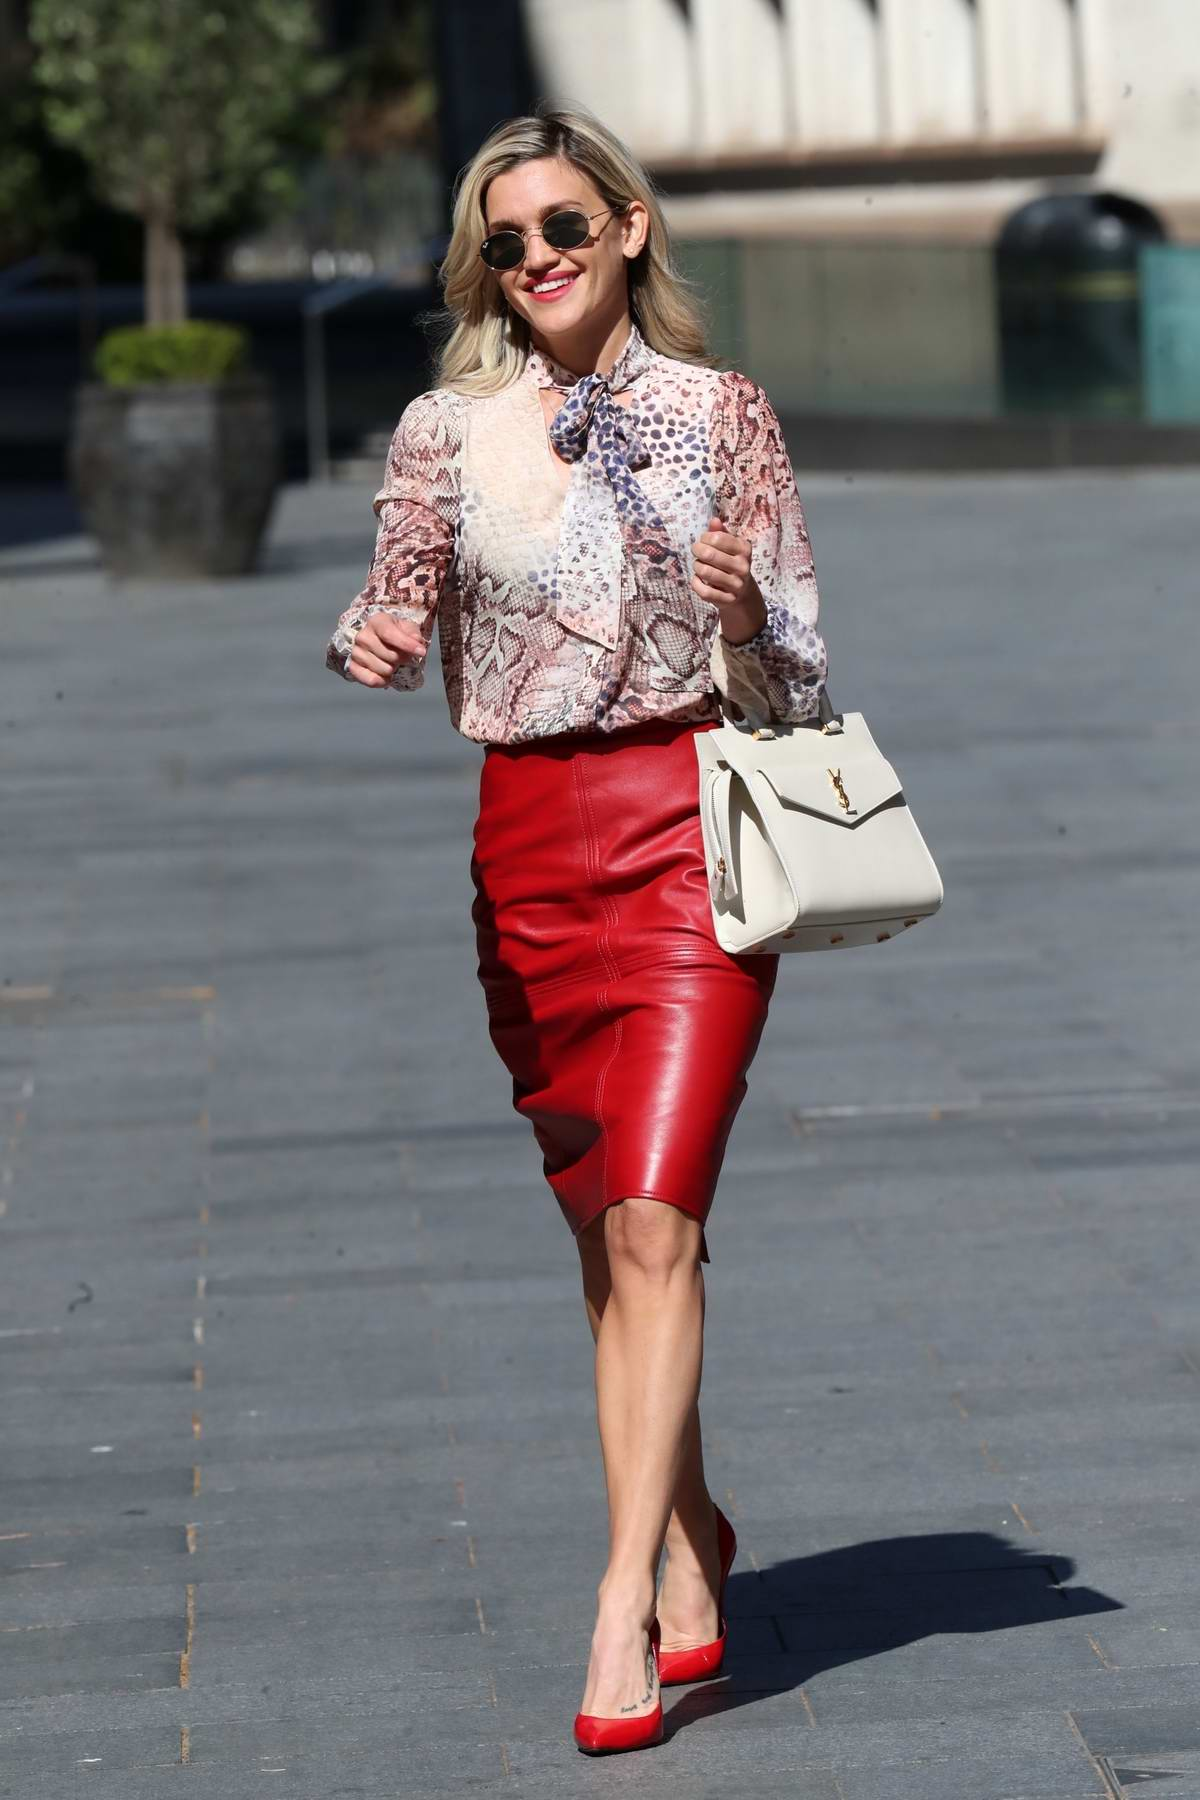 Ashley Roberts looks chic in red pencil skirt and print top while leaving the Global Studios in London, UK